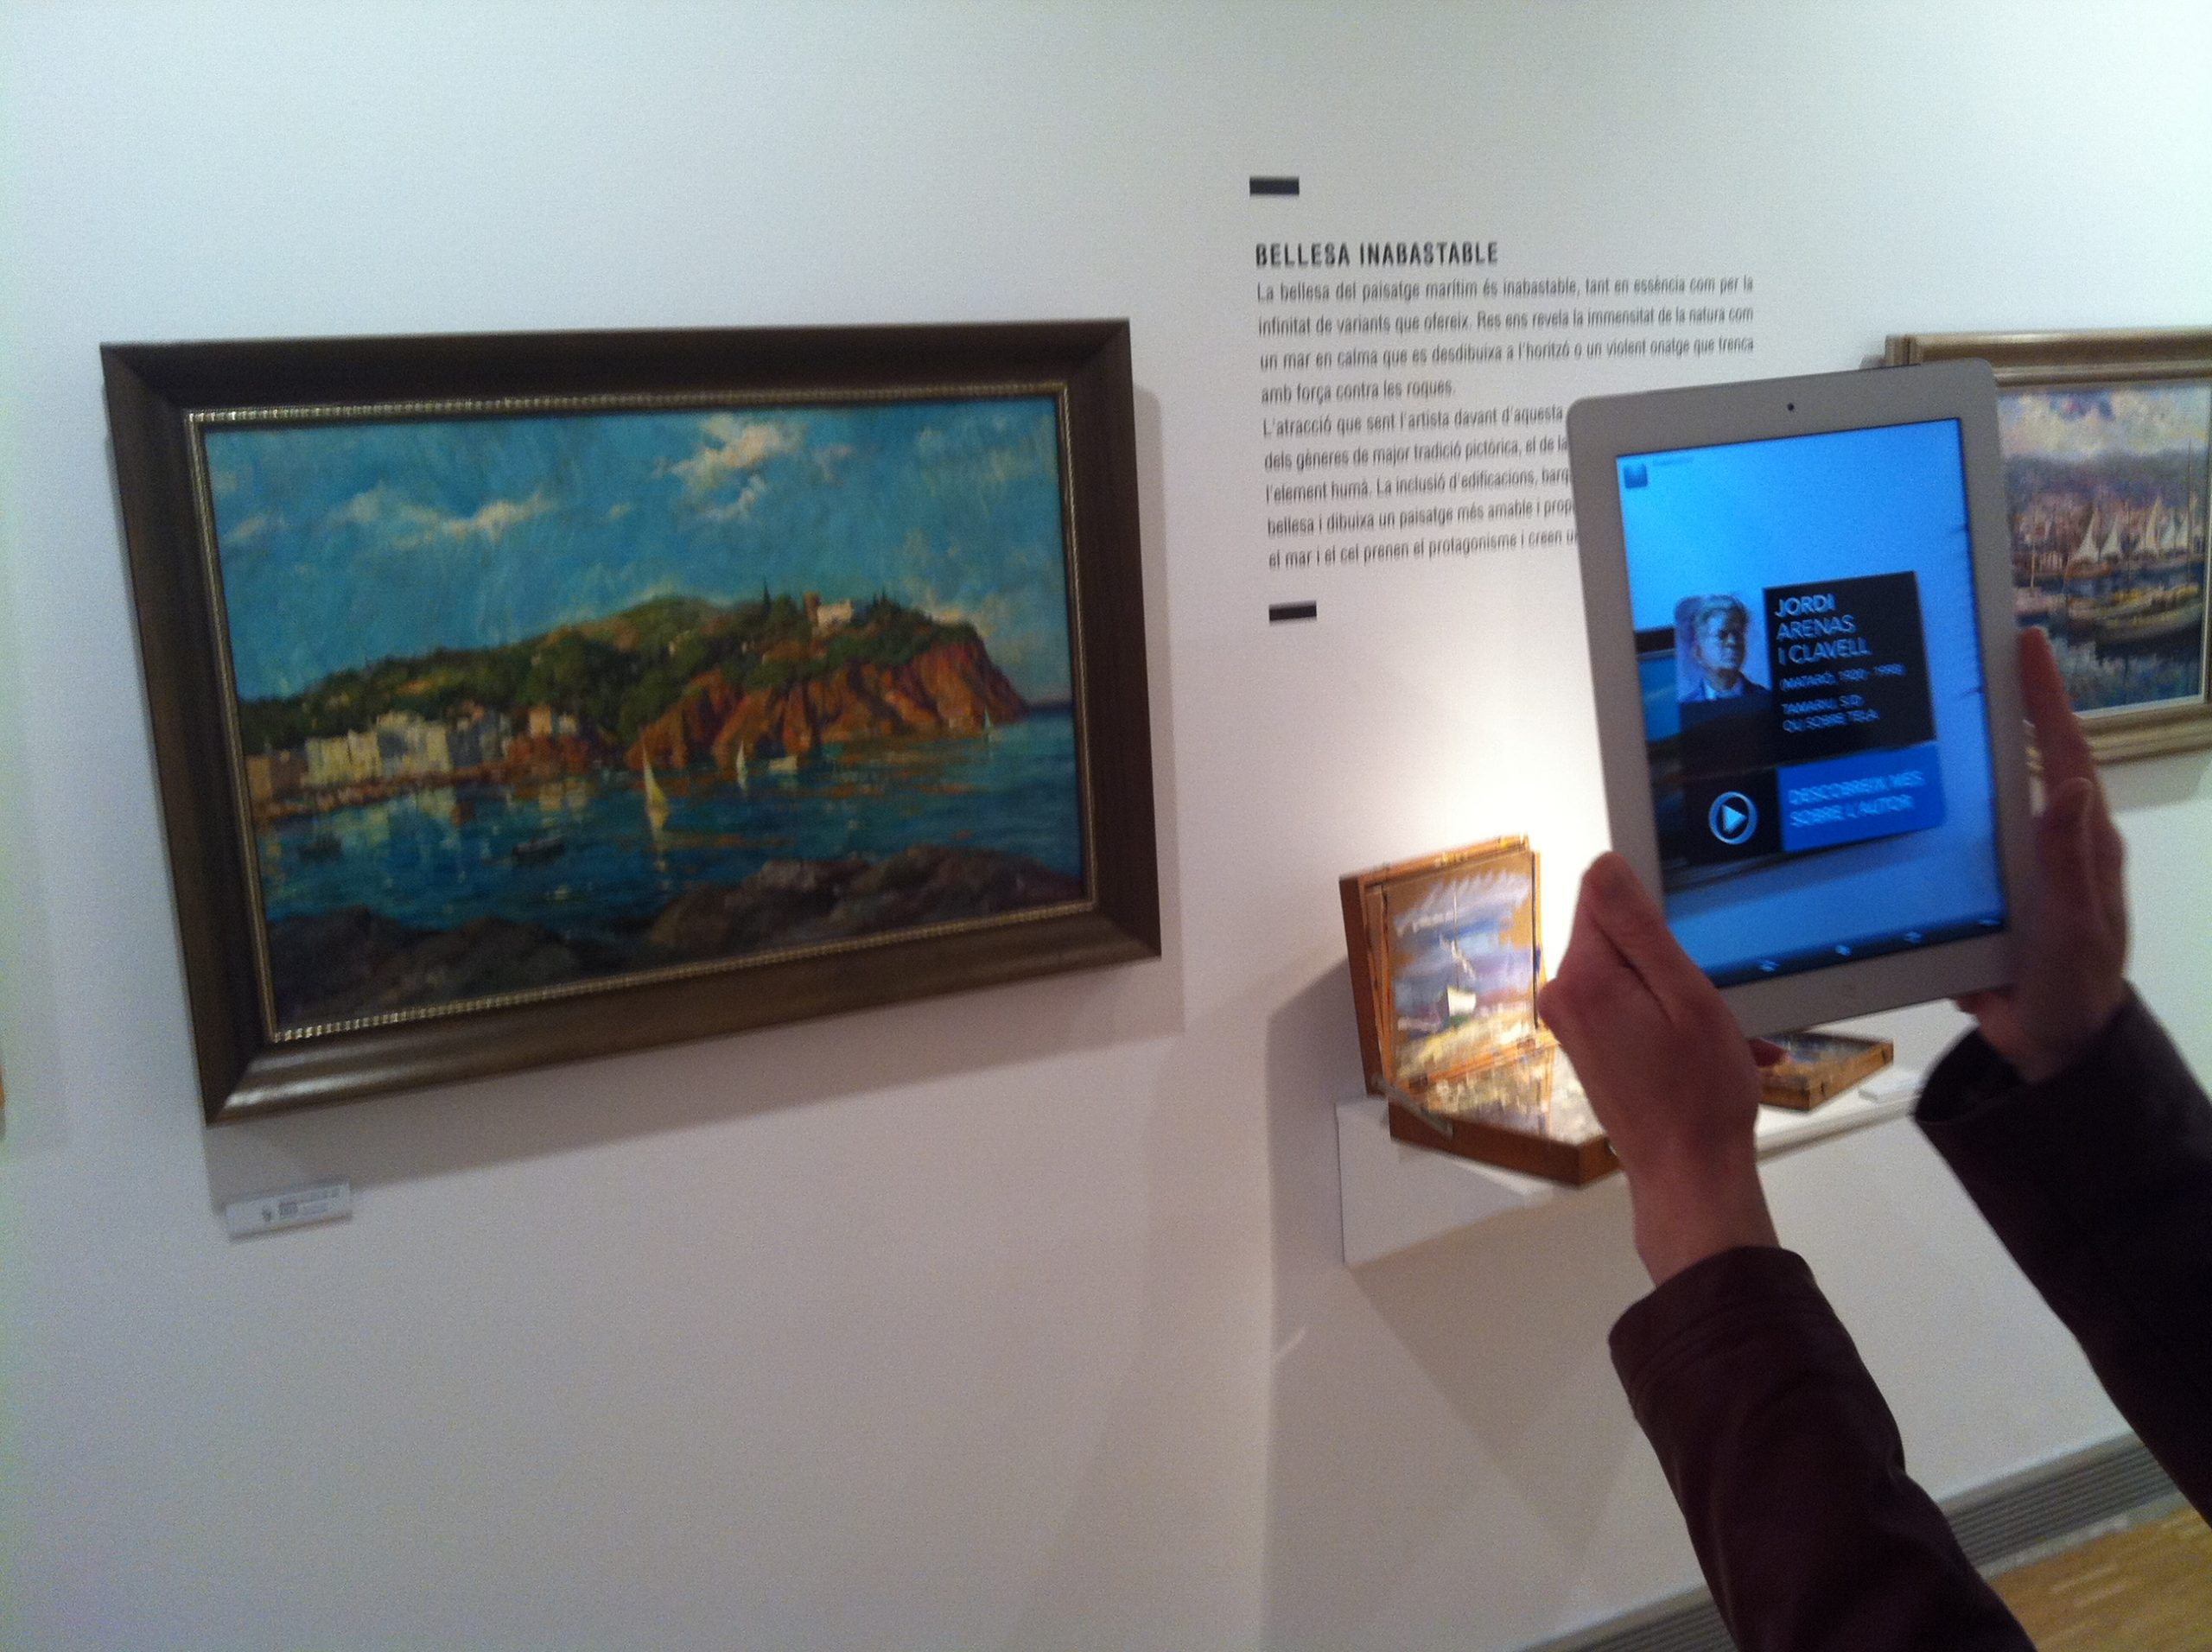 Art Galleries move to virtual rooms after coronavirus outbreak